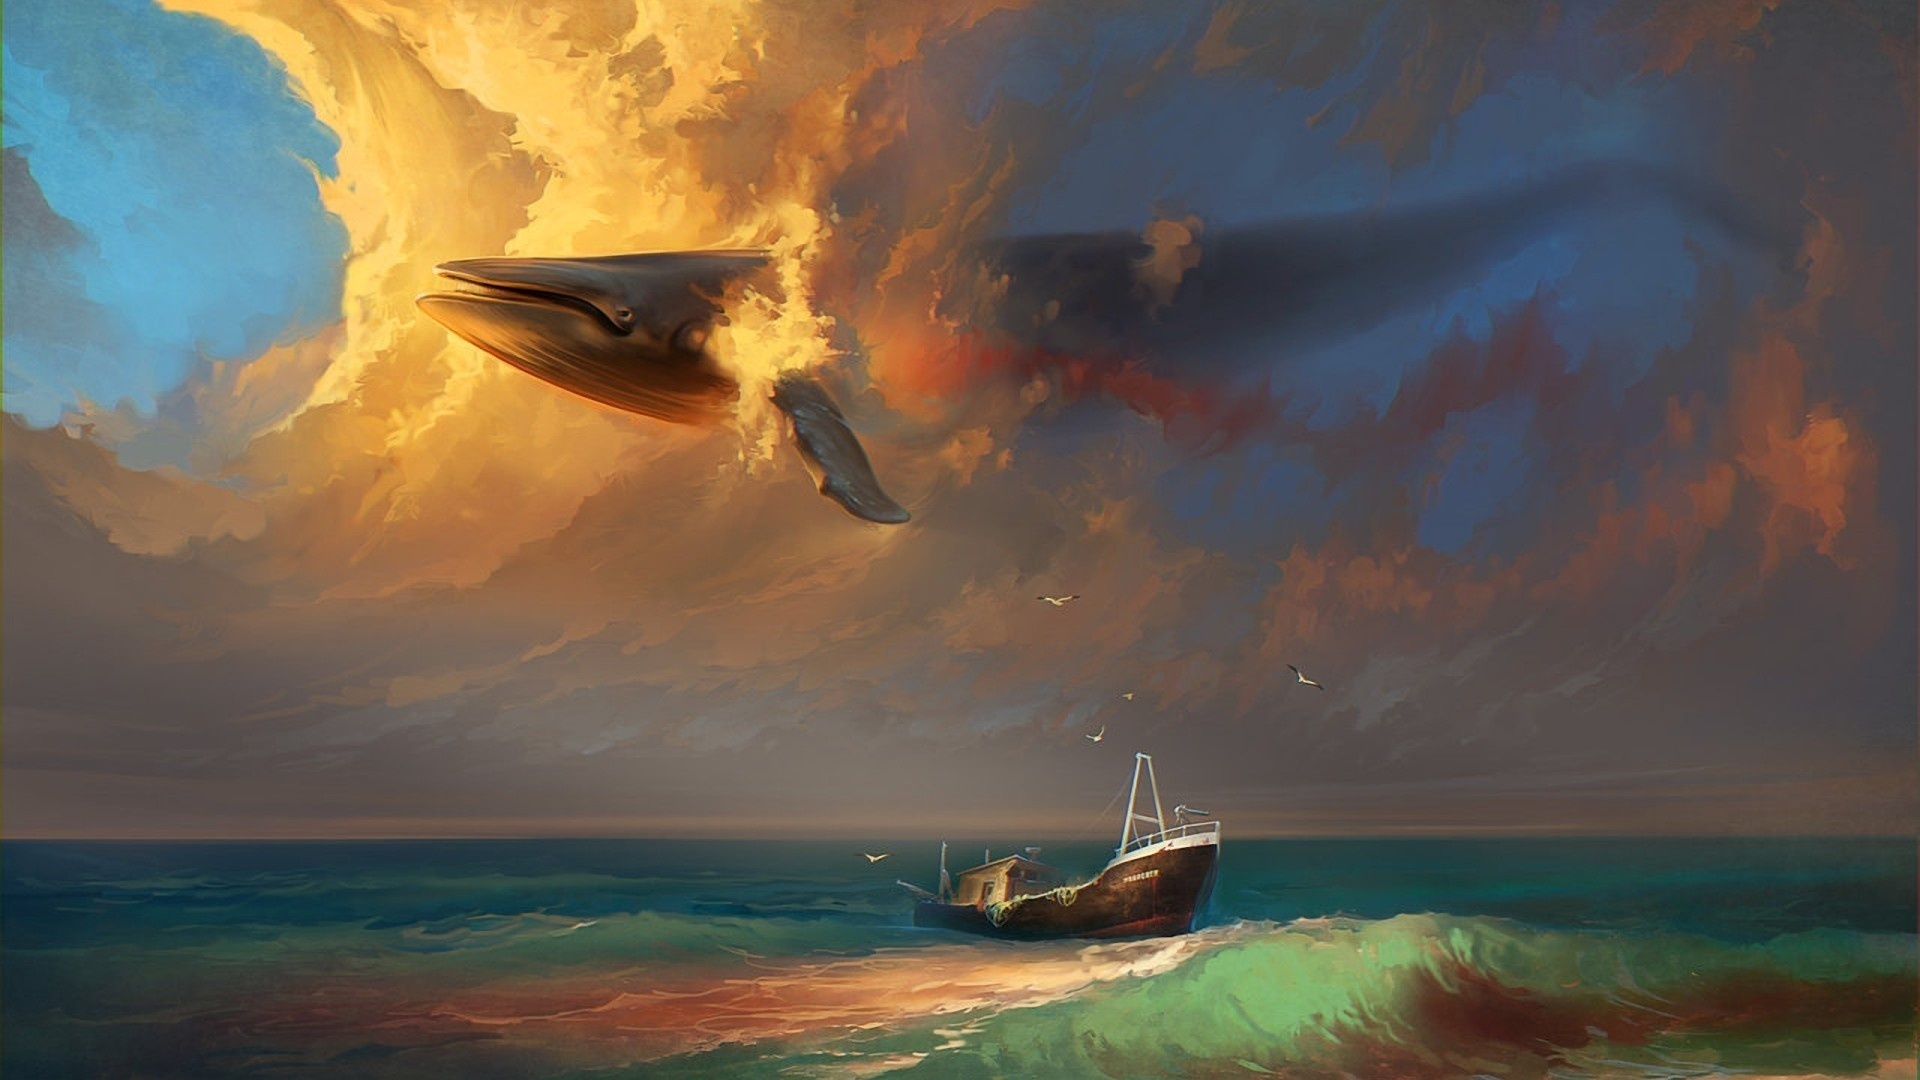 Artistic   Psychedelic Surrealism Trippy Surreal Whale Ship Wallpaper 1920x1080